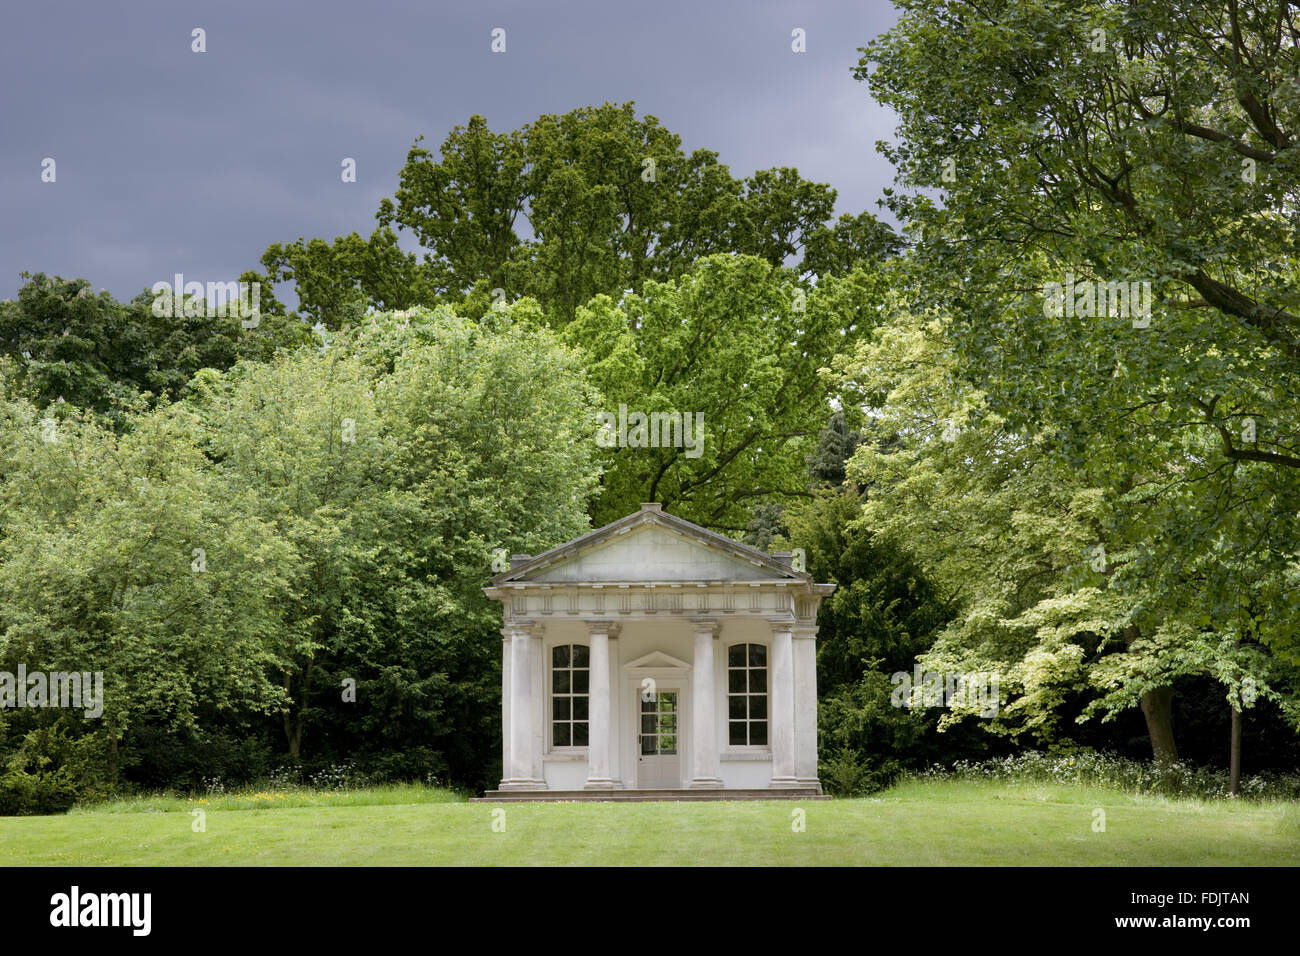 The Doric Temple, or Temple of Pan, in the park at Osterley, Middlesex. The Temple was built in the first half of - Stock Image